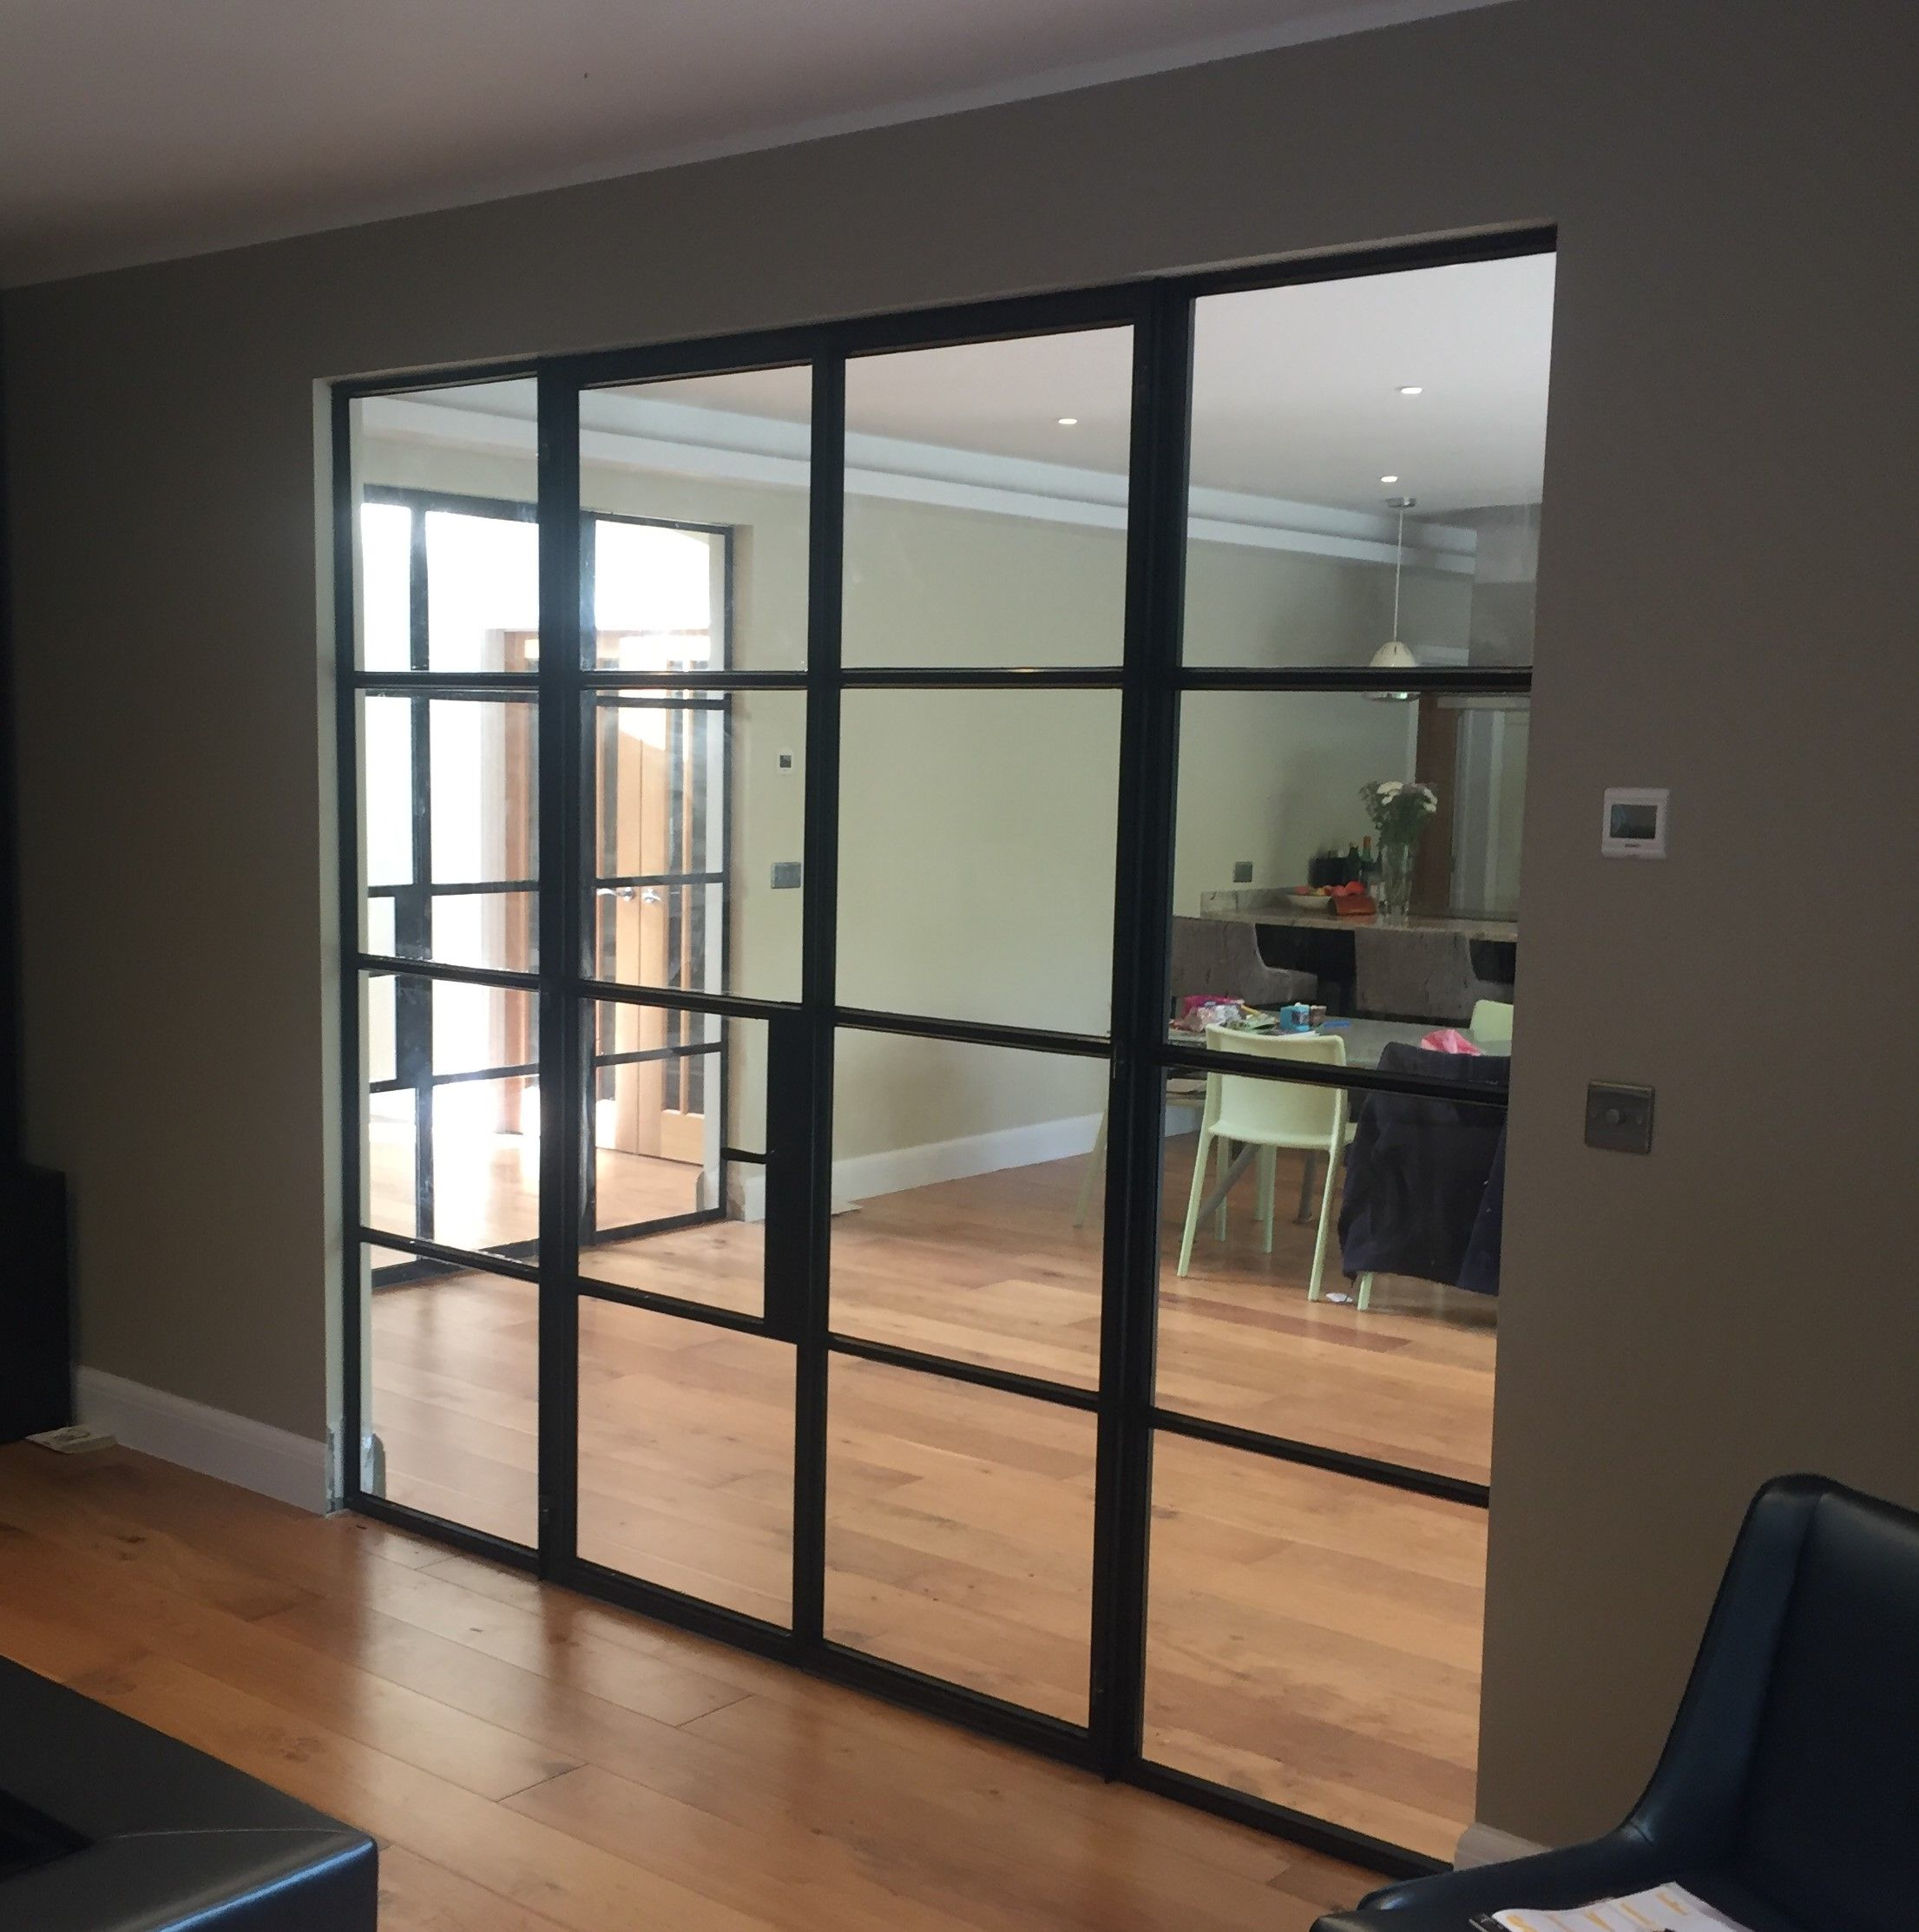 Internal Crittall Door Screen To Divide Kitchen And Living